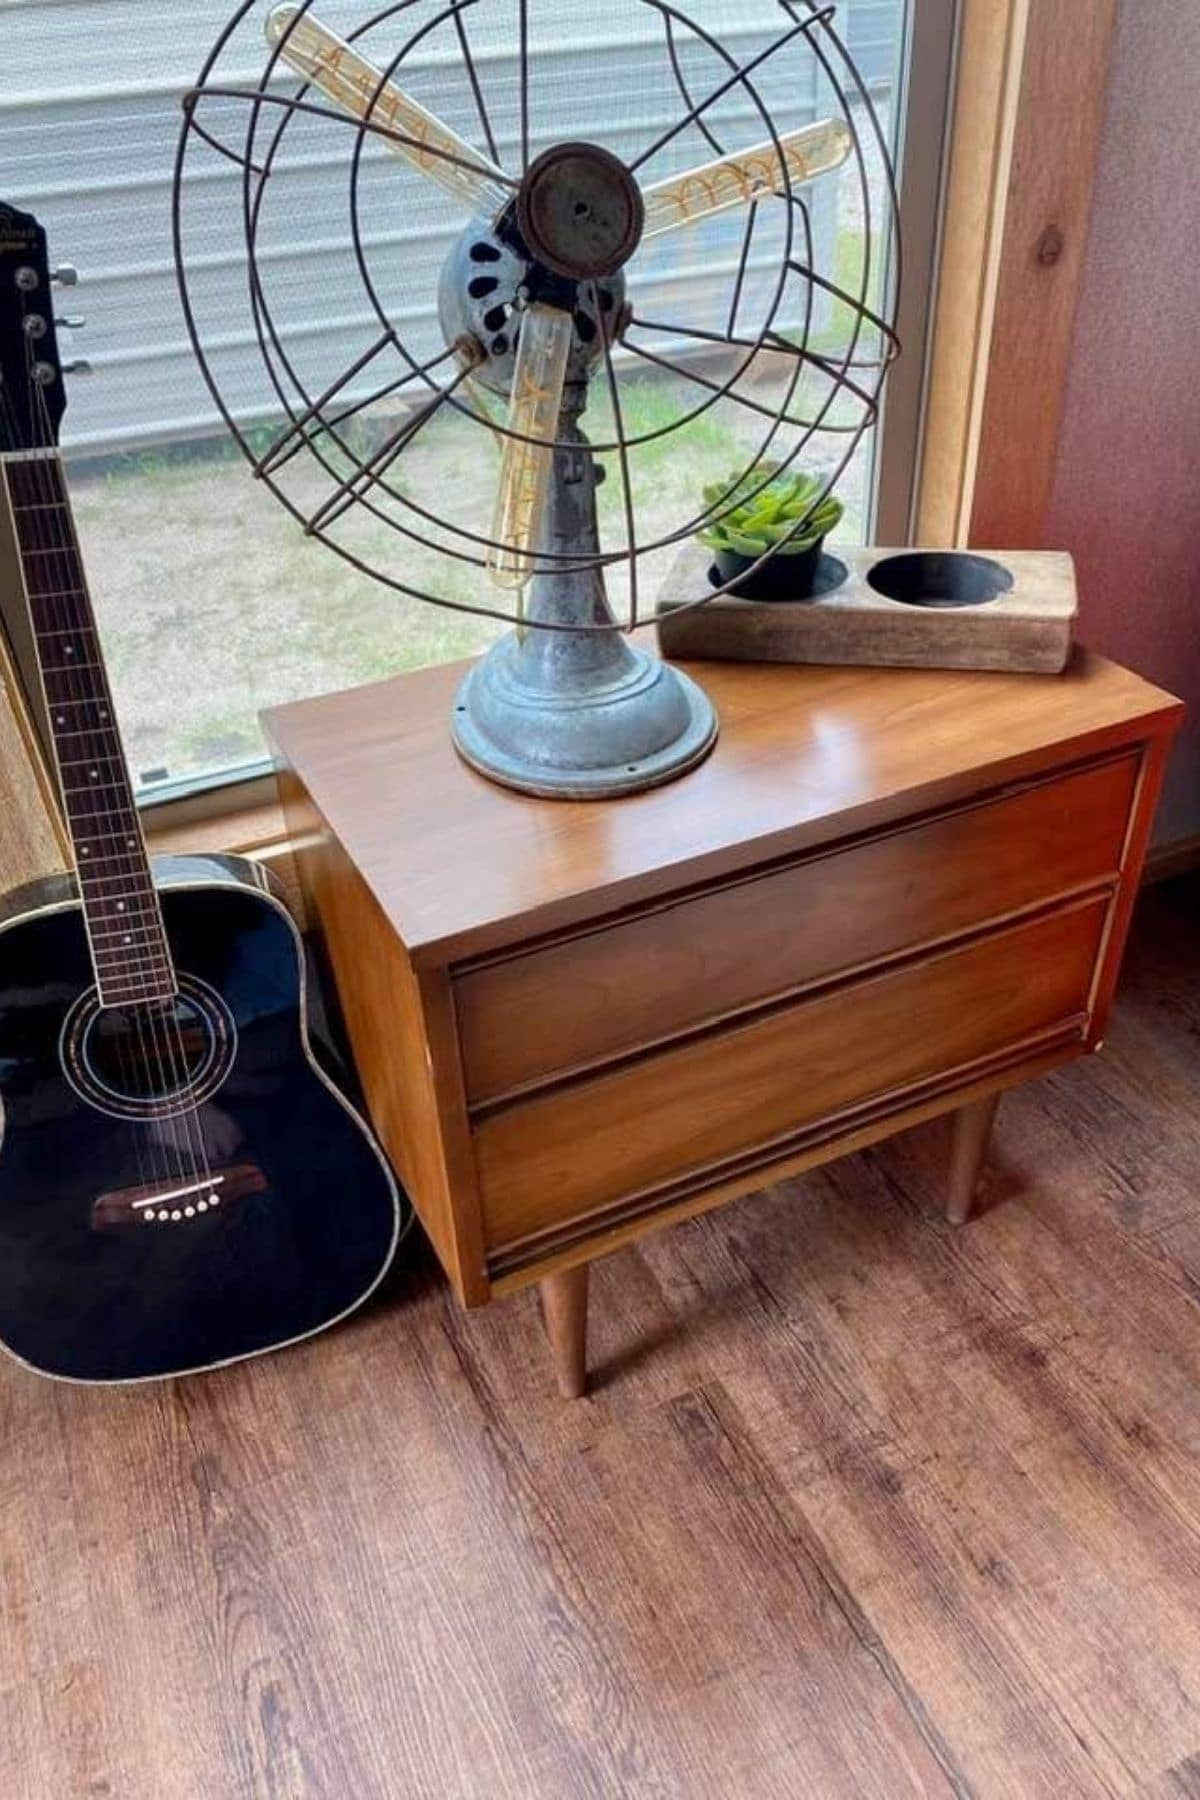 Mid century modern end table with blue fan and guitar next to it below window